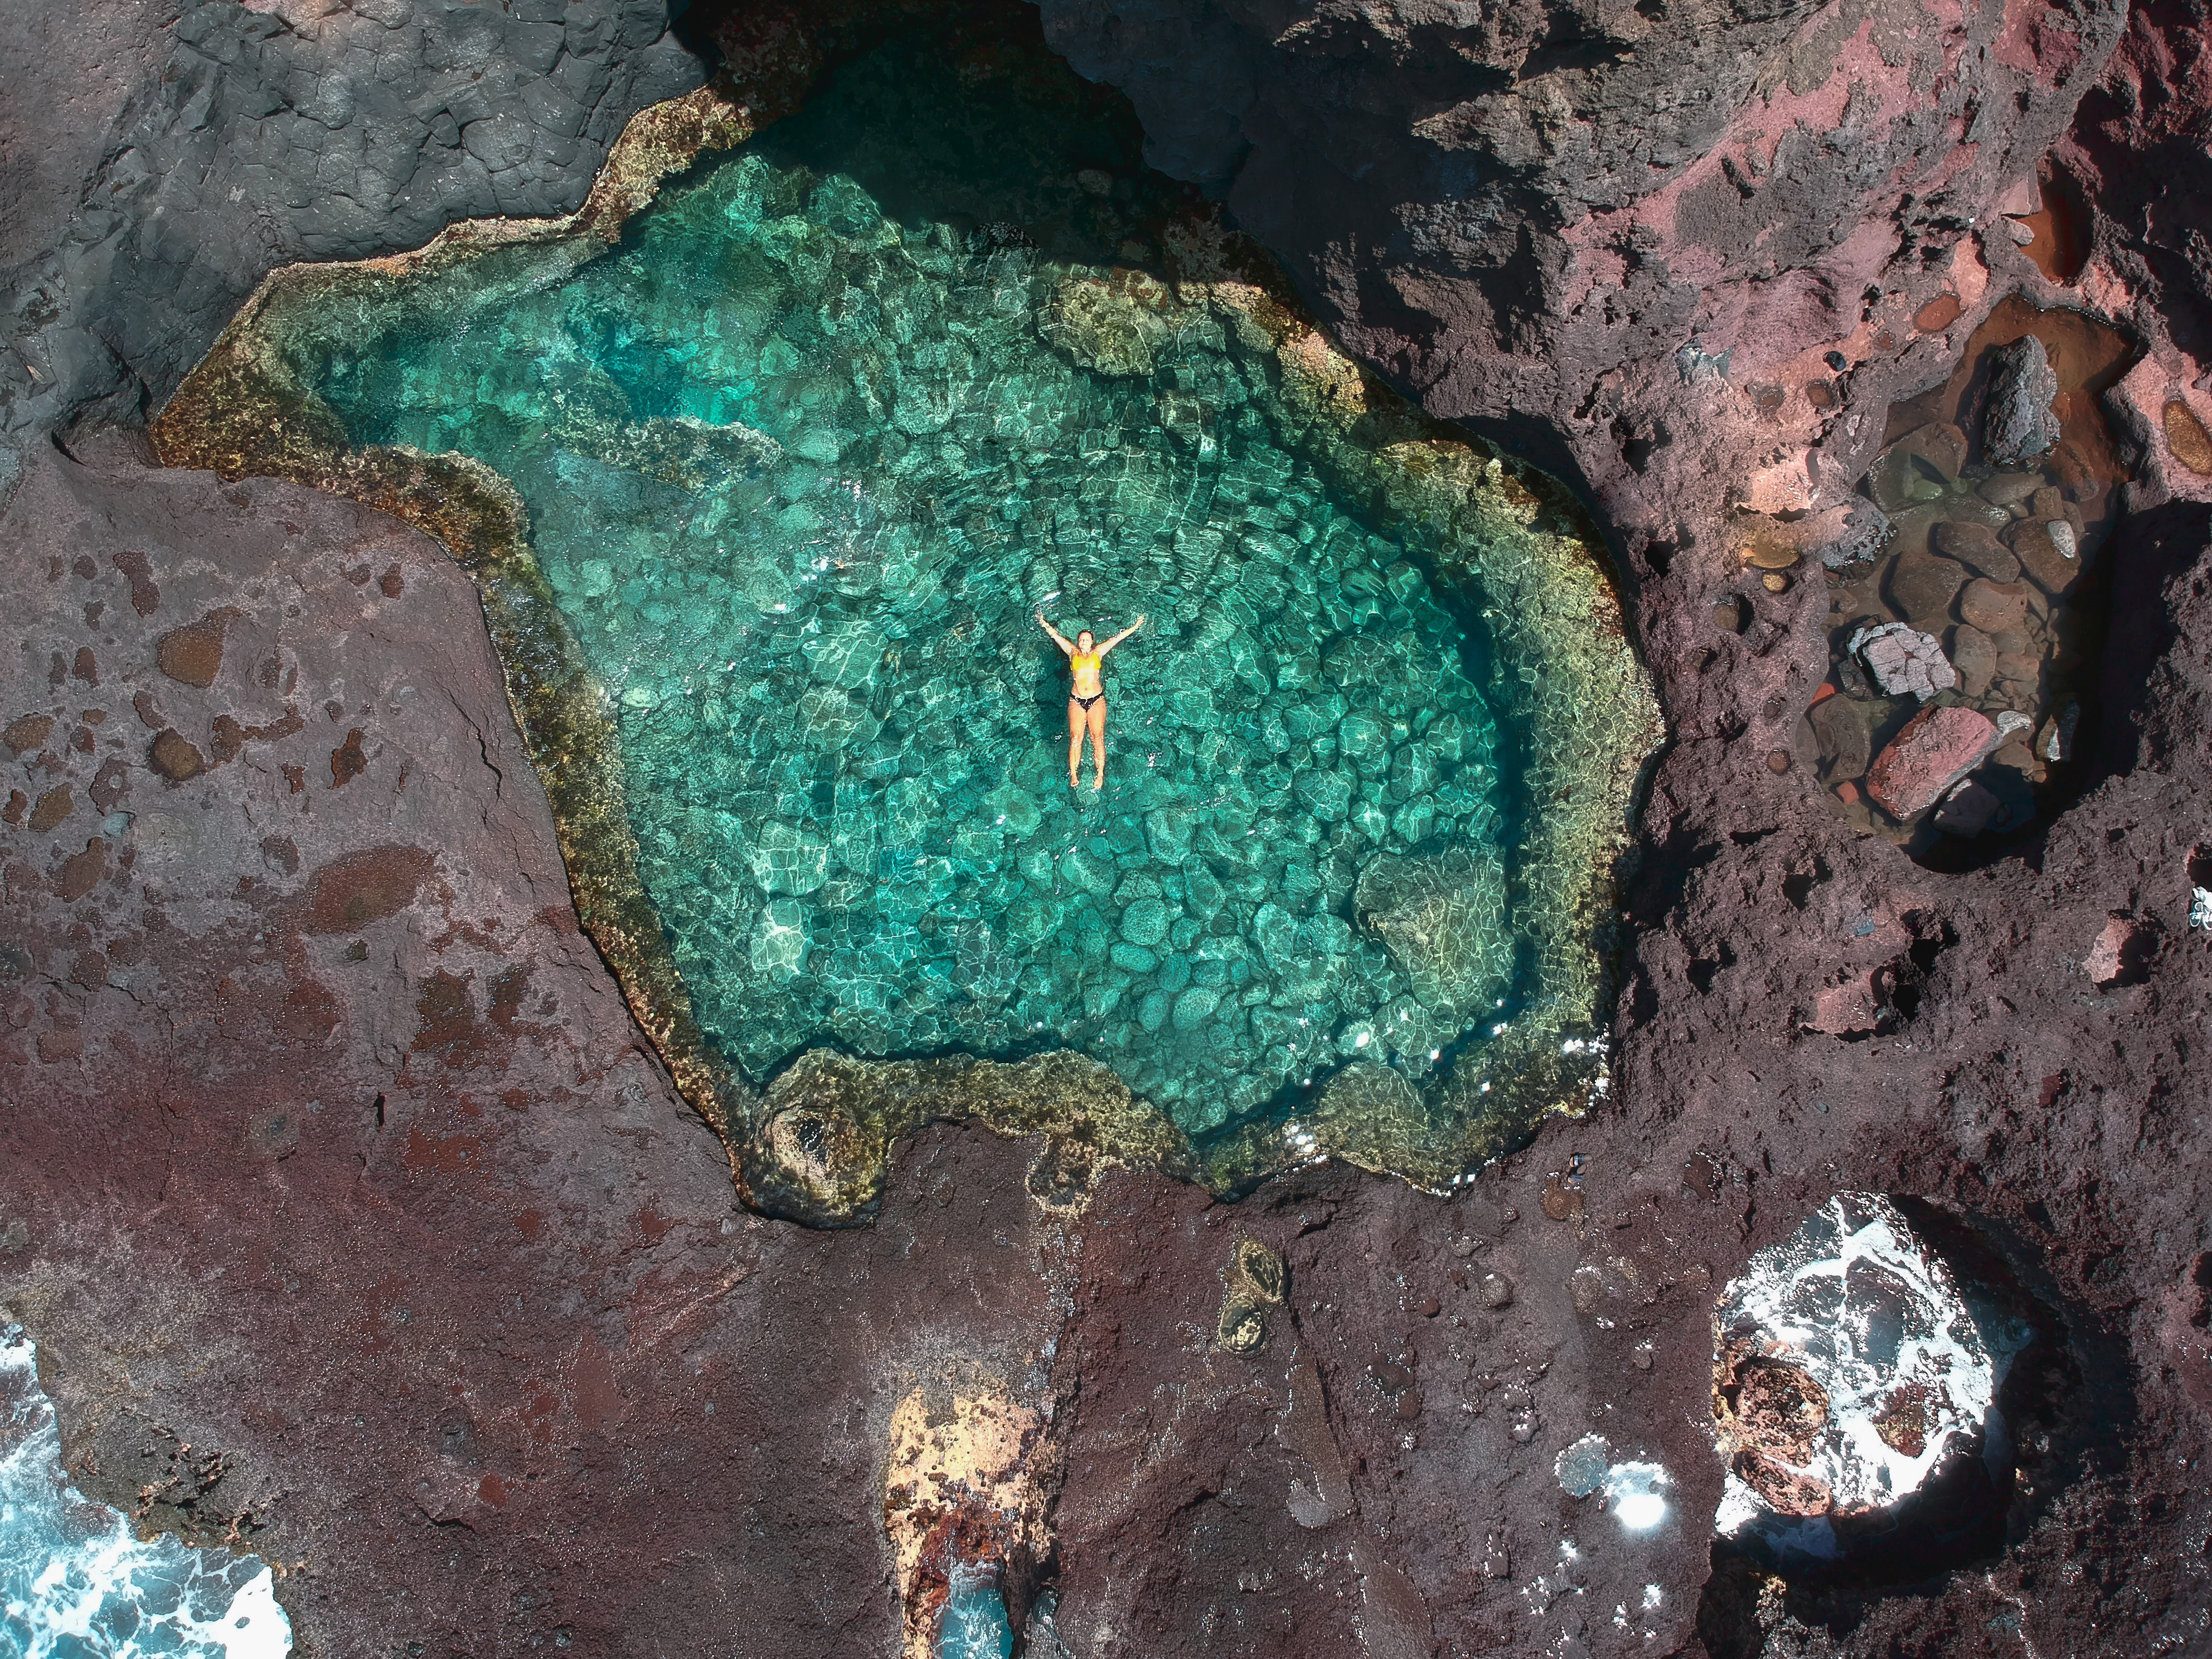 aerial photography of person floating on calm body of lake surrounded by rock during daytime